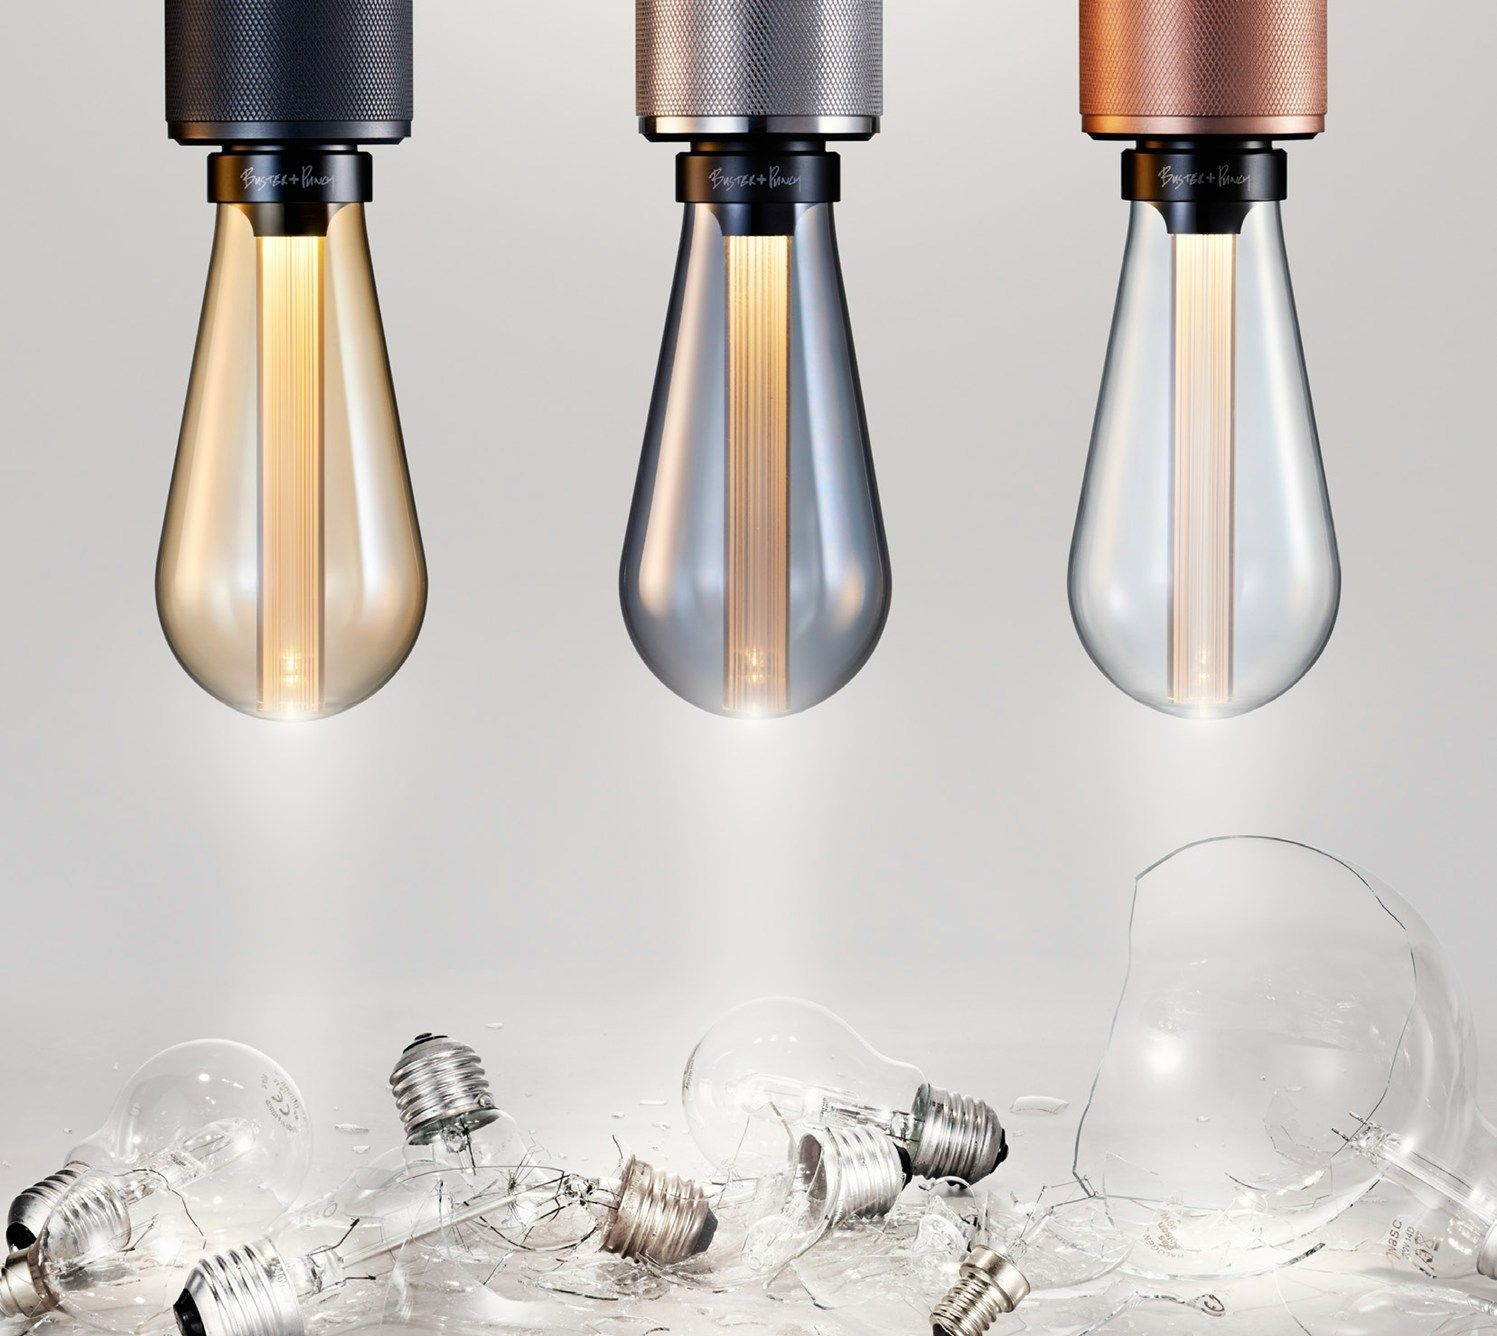 Euroluce Gets A Touch Of Rocknroll With Buster + Punch